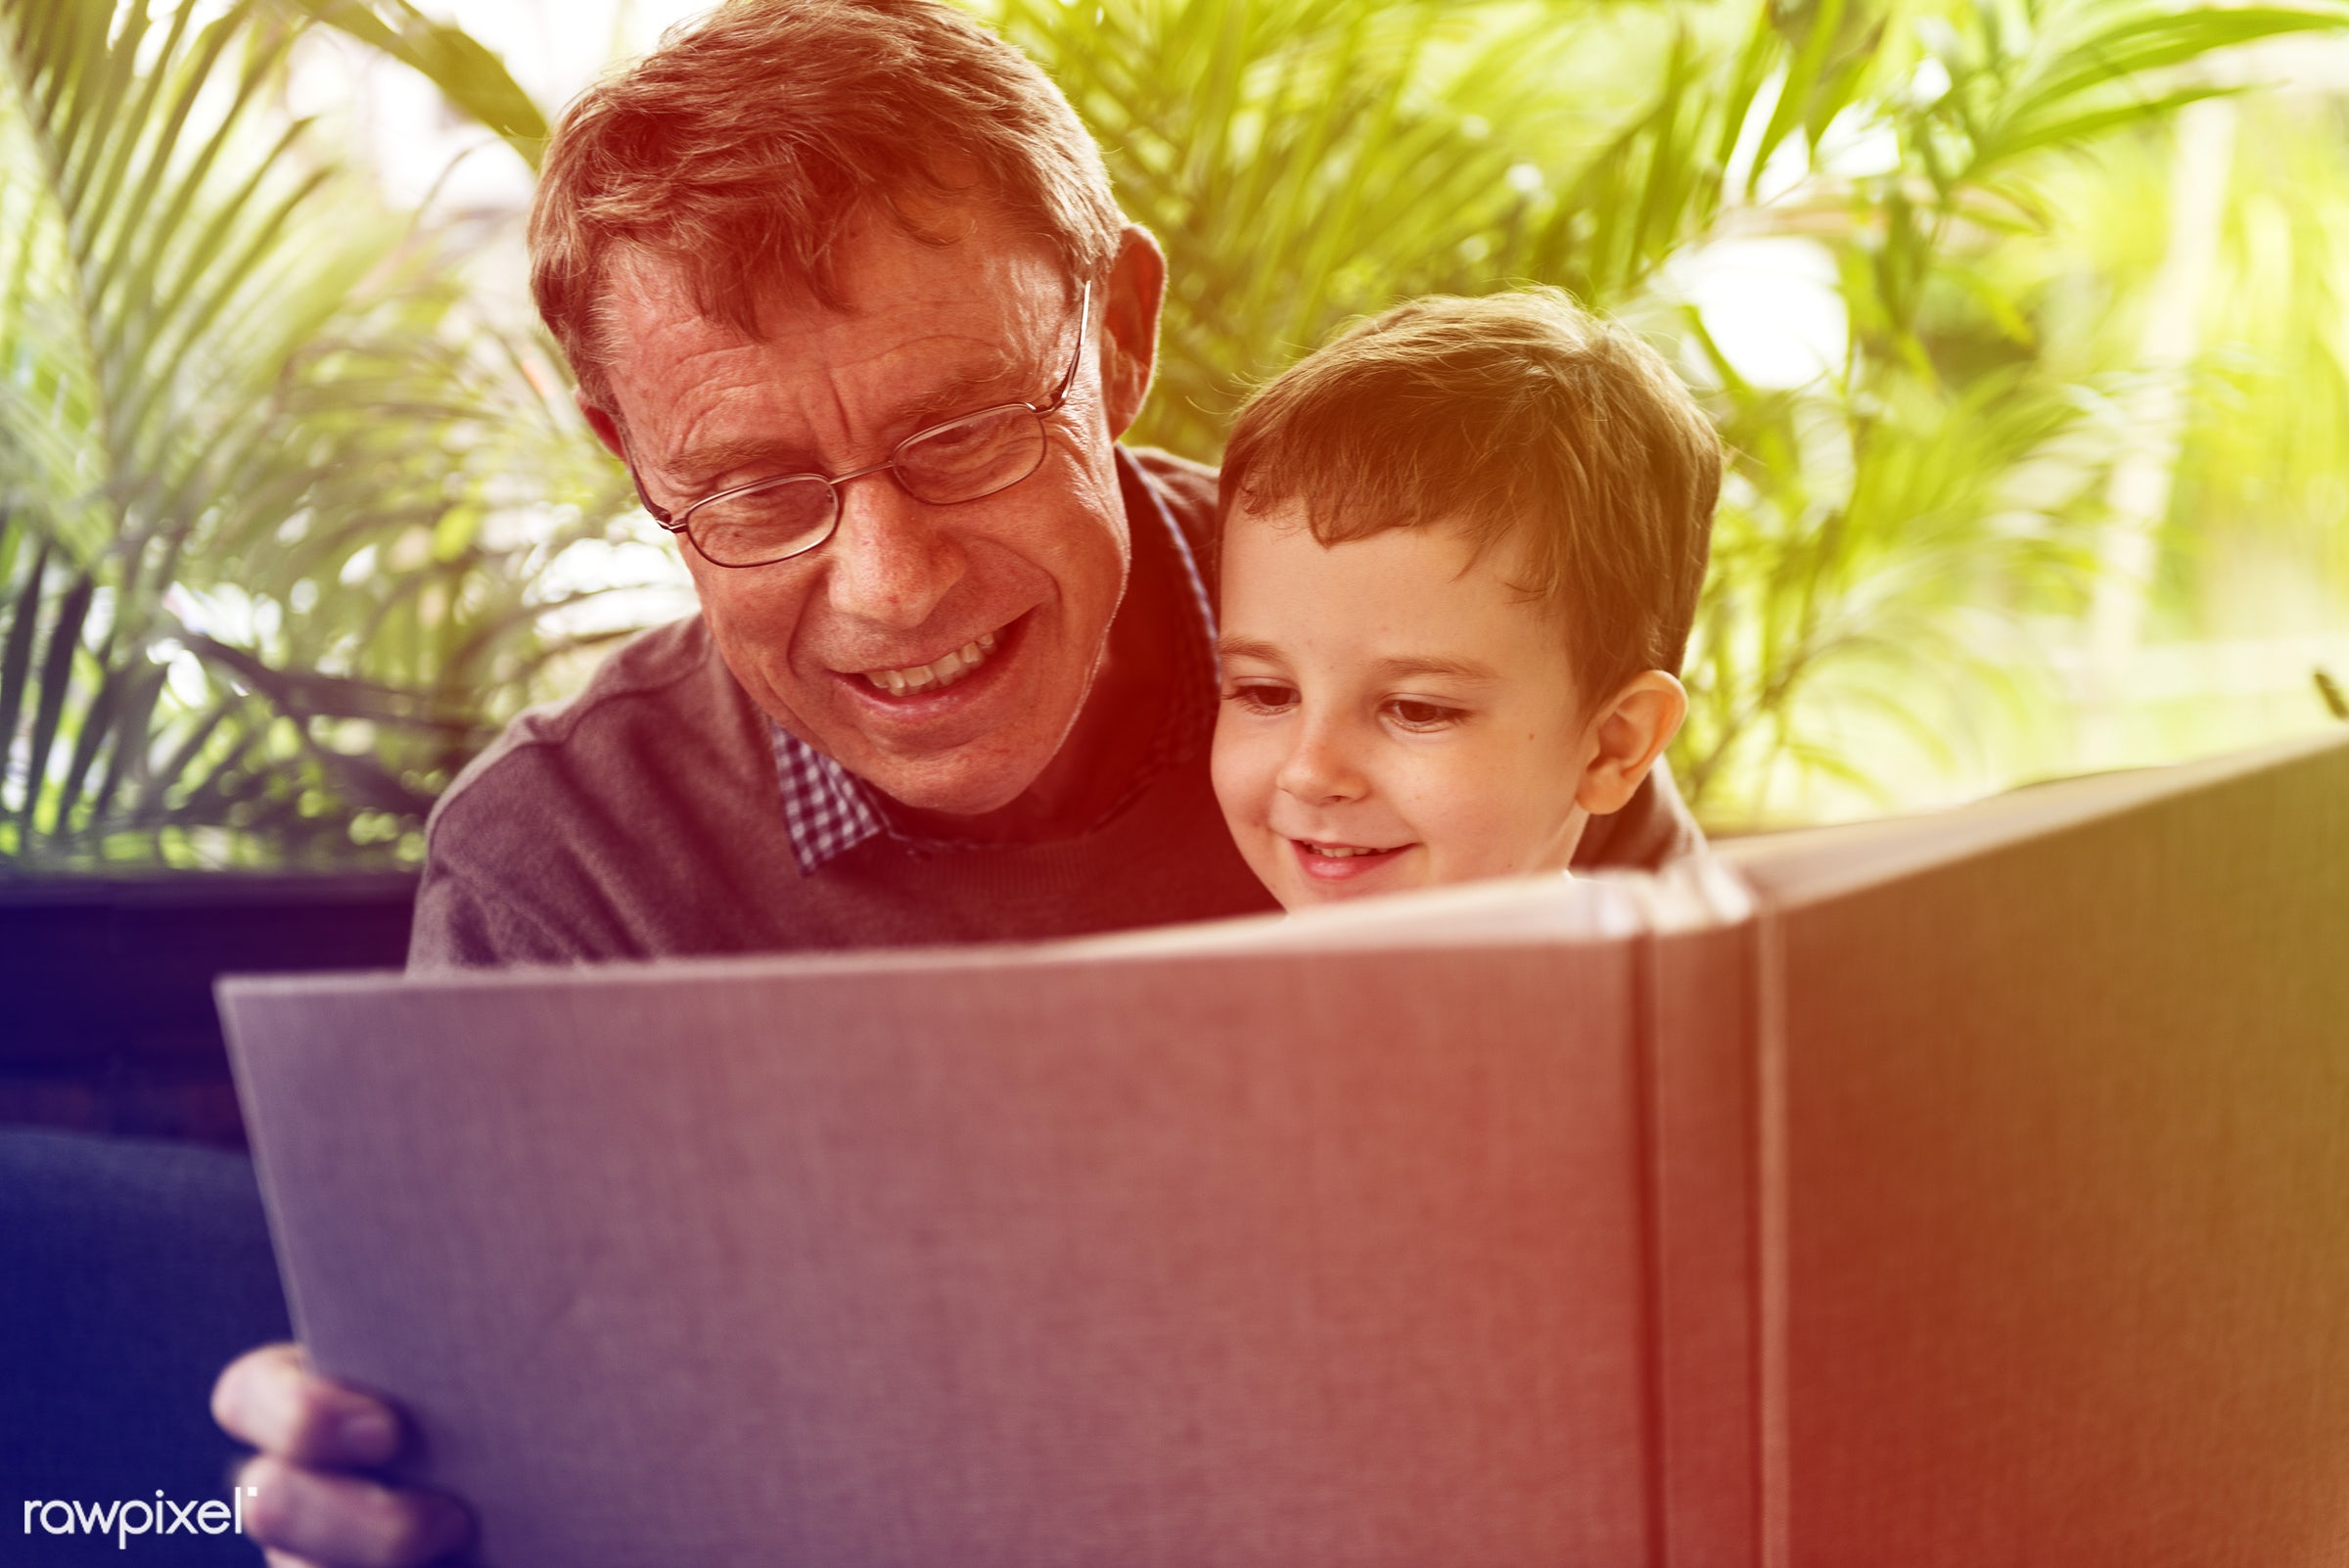 expression, person, reading, grandfather, album, visit, show, smitten, house, recreation, people, together, caucasian, kid,...